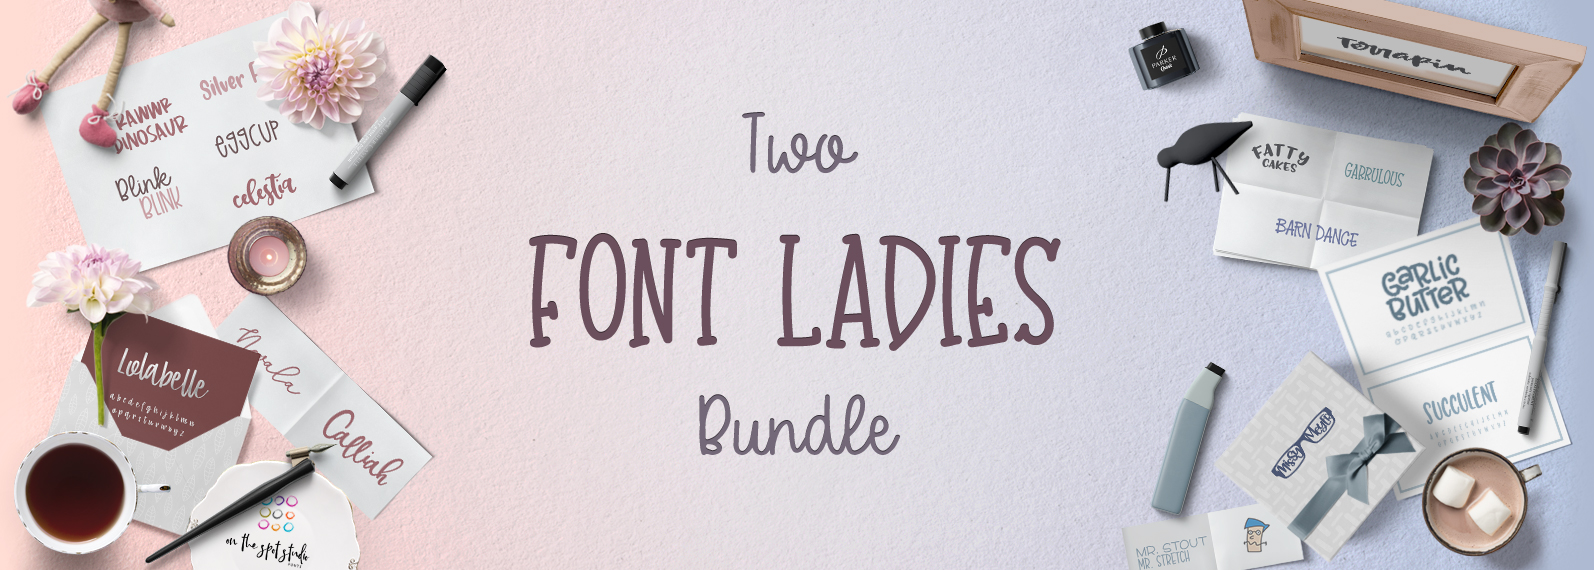 The Two Font Ladies Bundle Cover